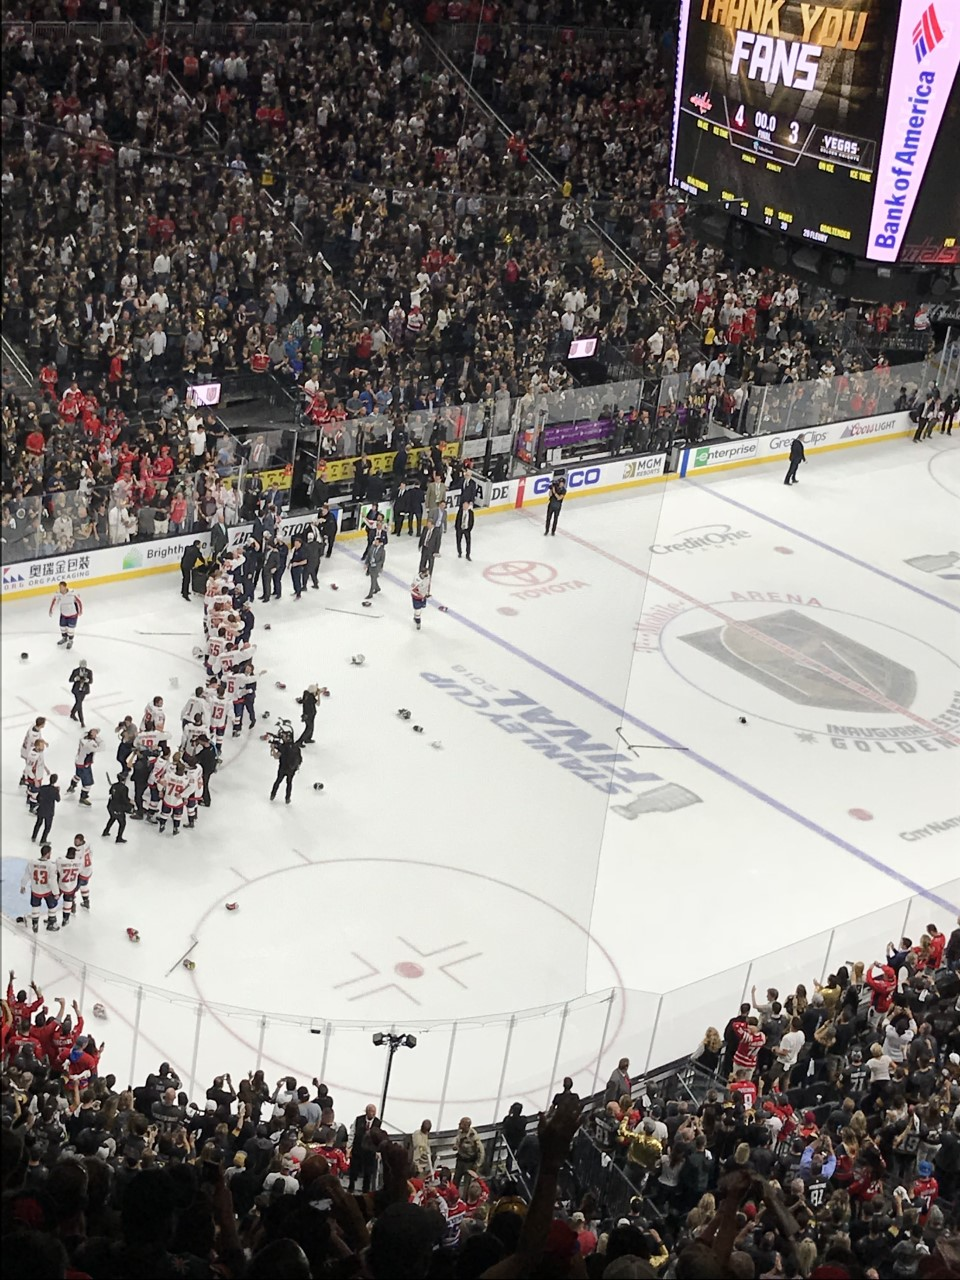 The Washington Capitals celebrate after winning their first Stanley Cup